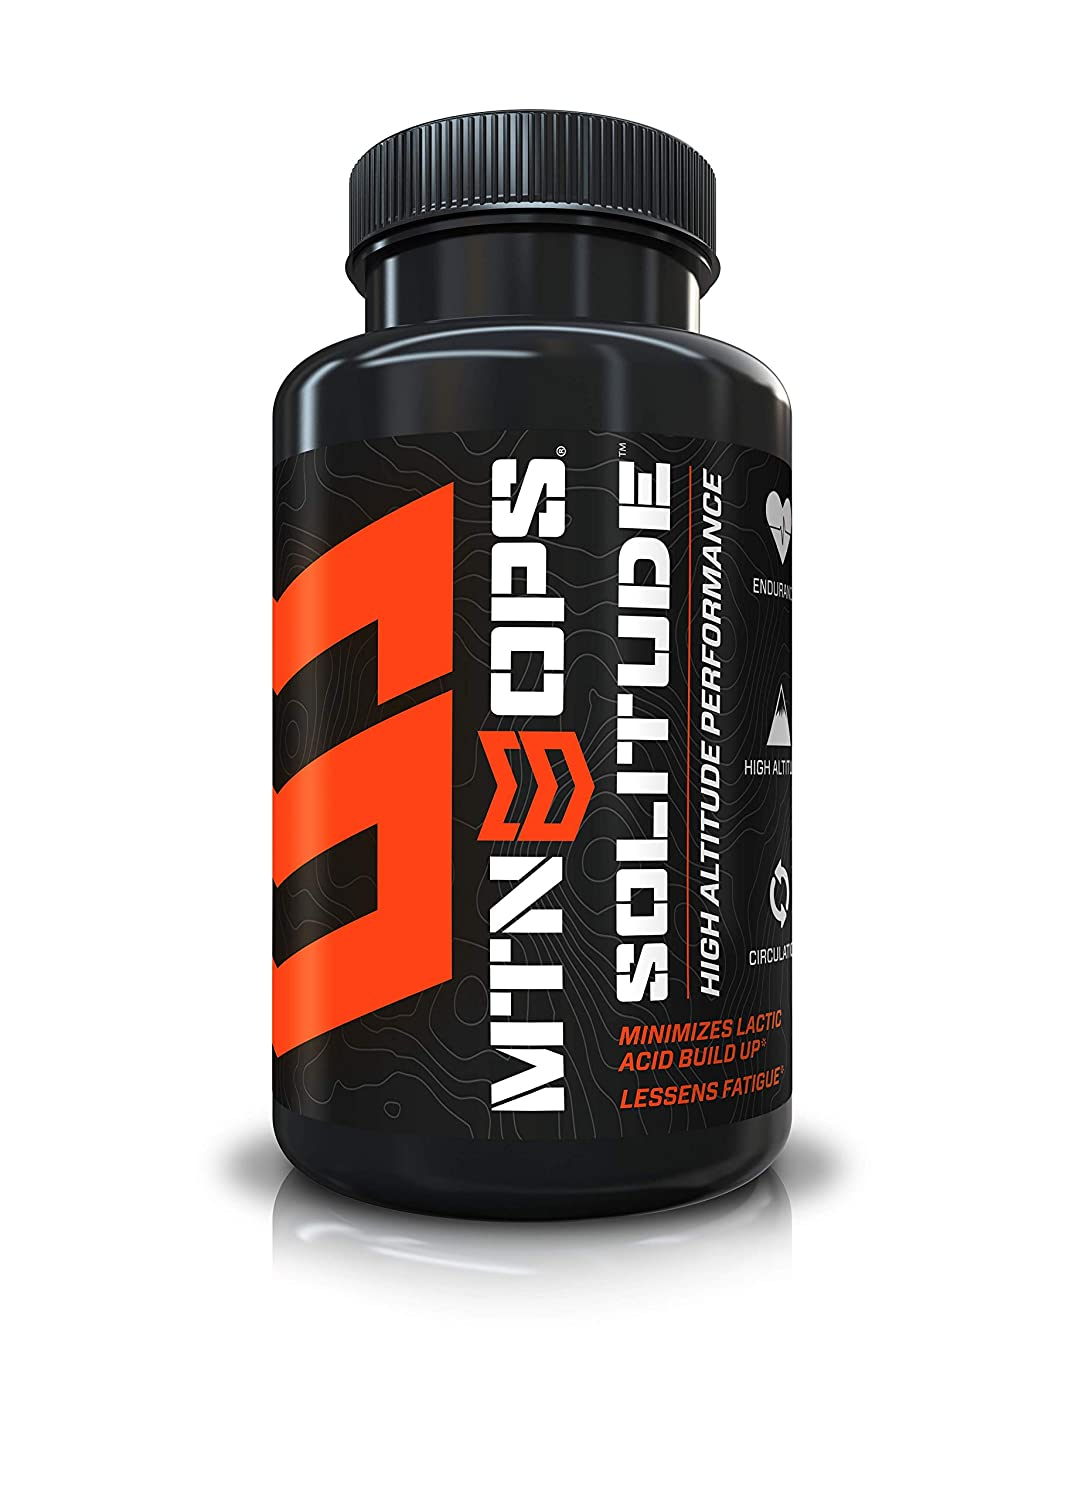 MTN OPS Solitude High Altitude Performance Respiratory Support Supplement – 25 Servings